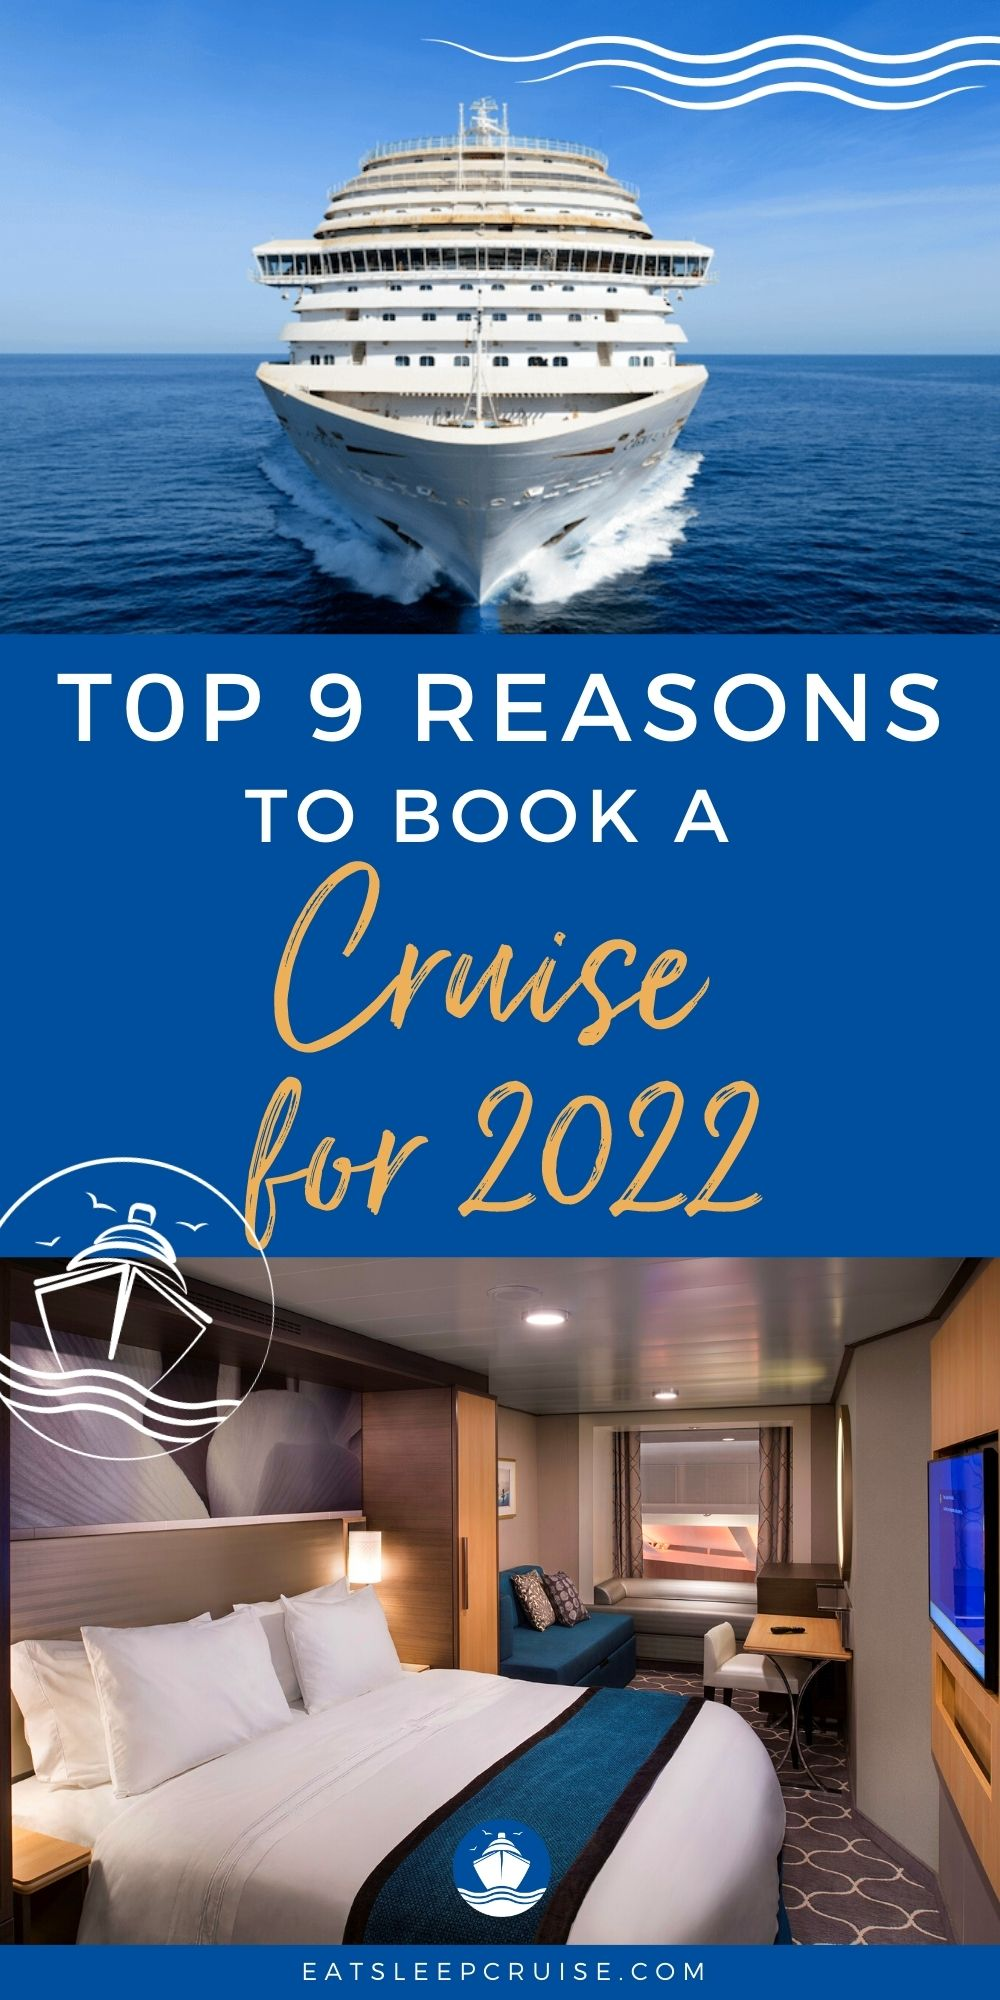 Why You Should Book a Cruise for 2022